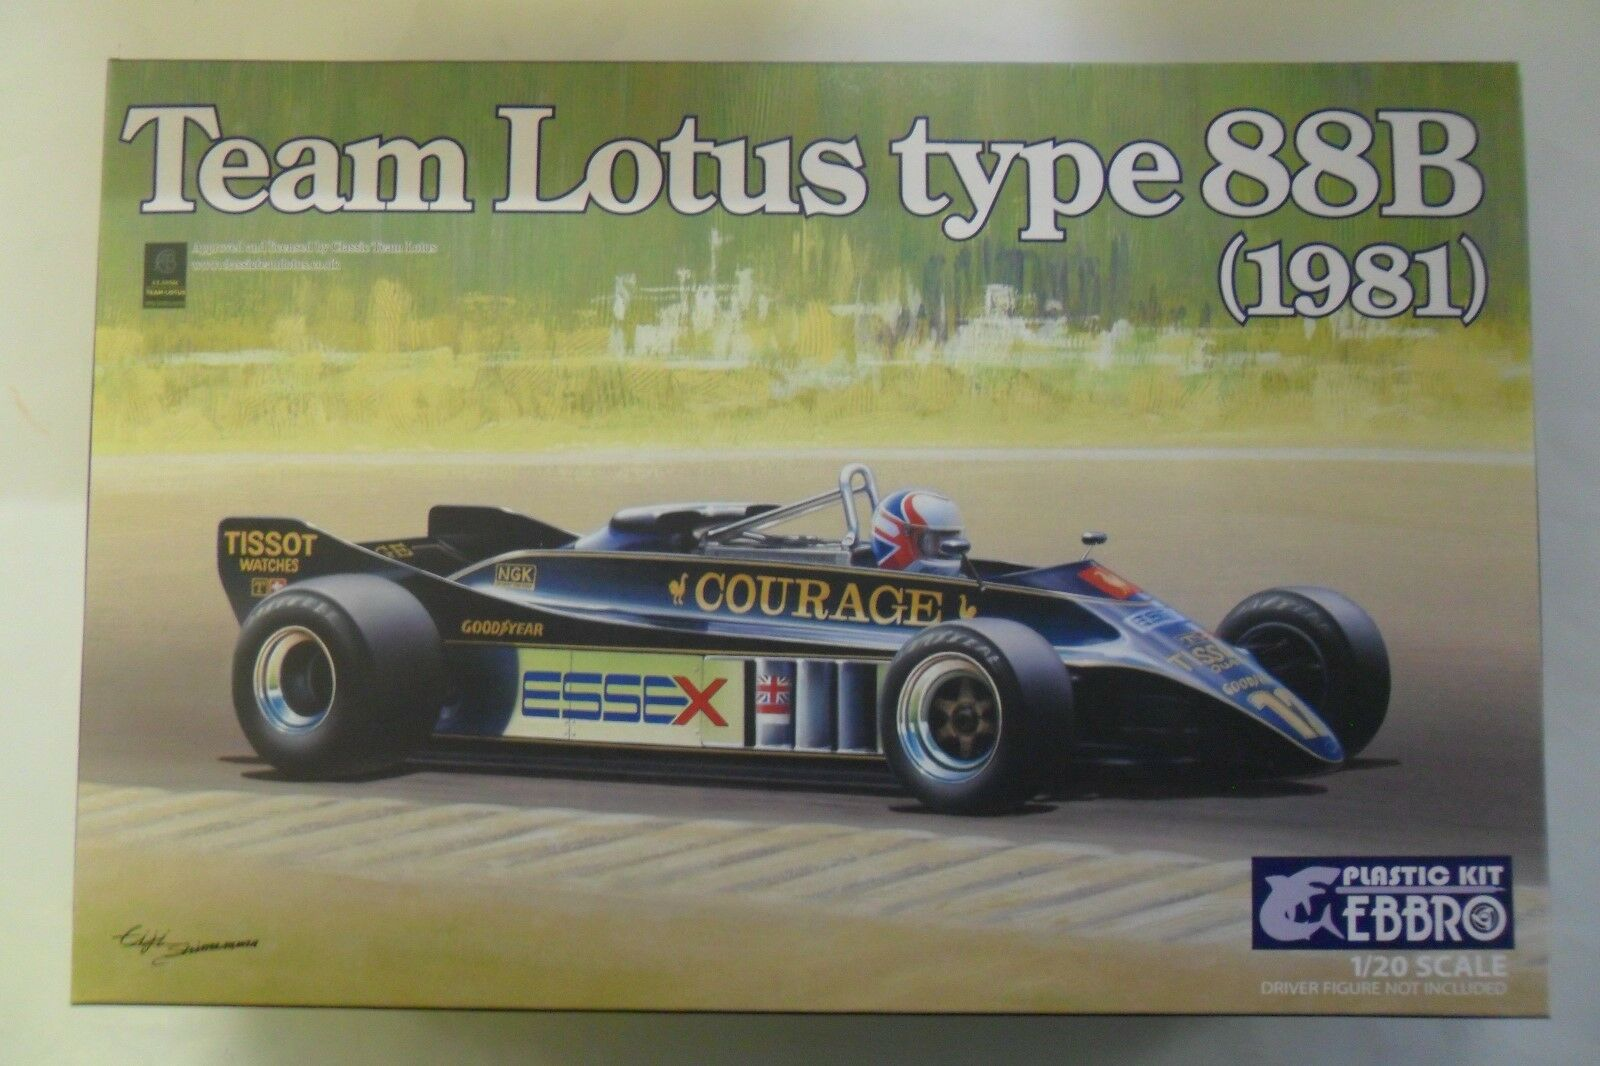 EBBRO 1 20 KIT DA COSTRUIRE IN PLASTICA TEAM LOTUS TYPE 88B 1981  ART 010 6800